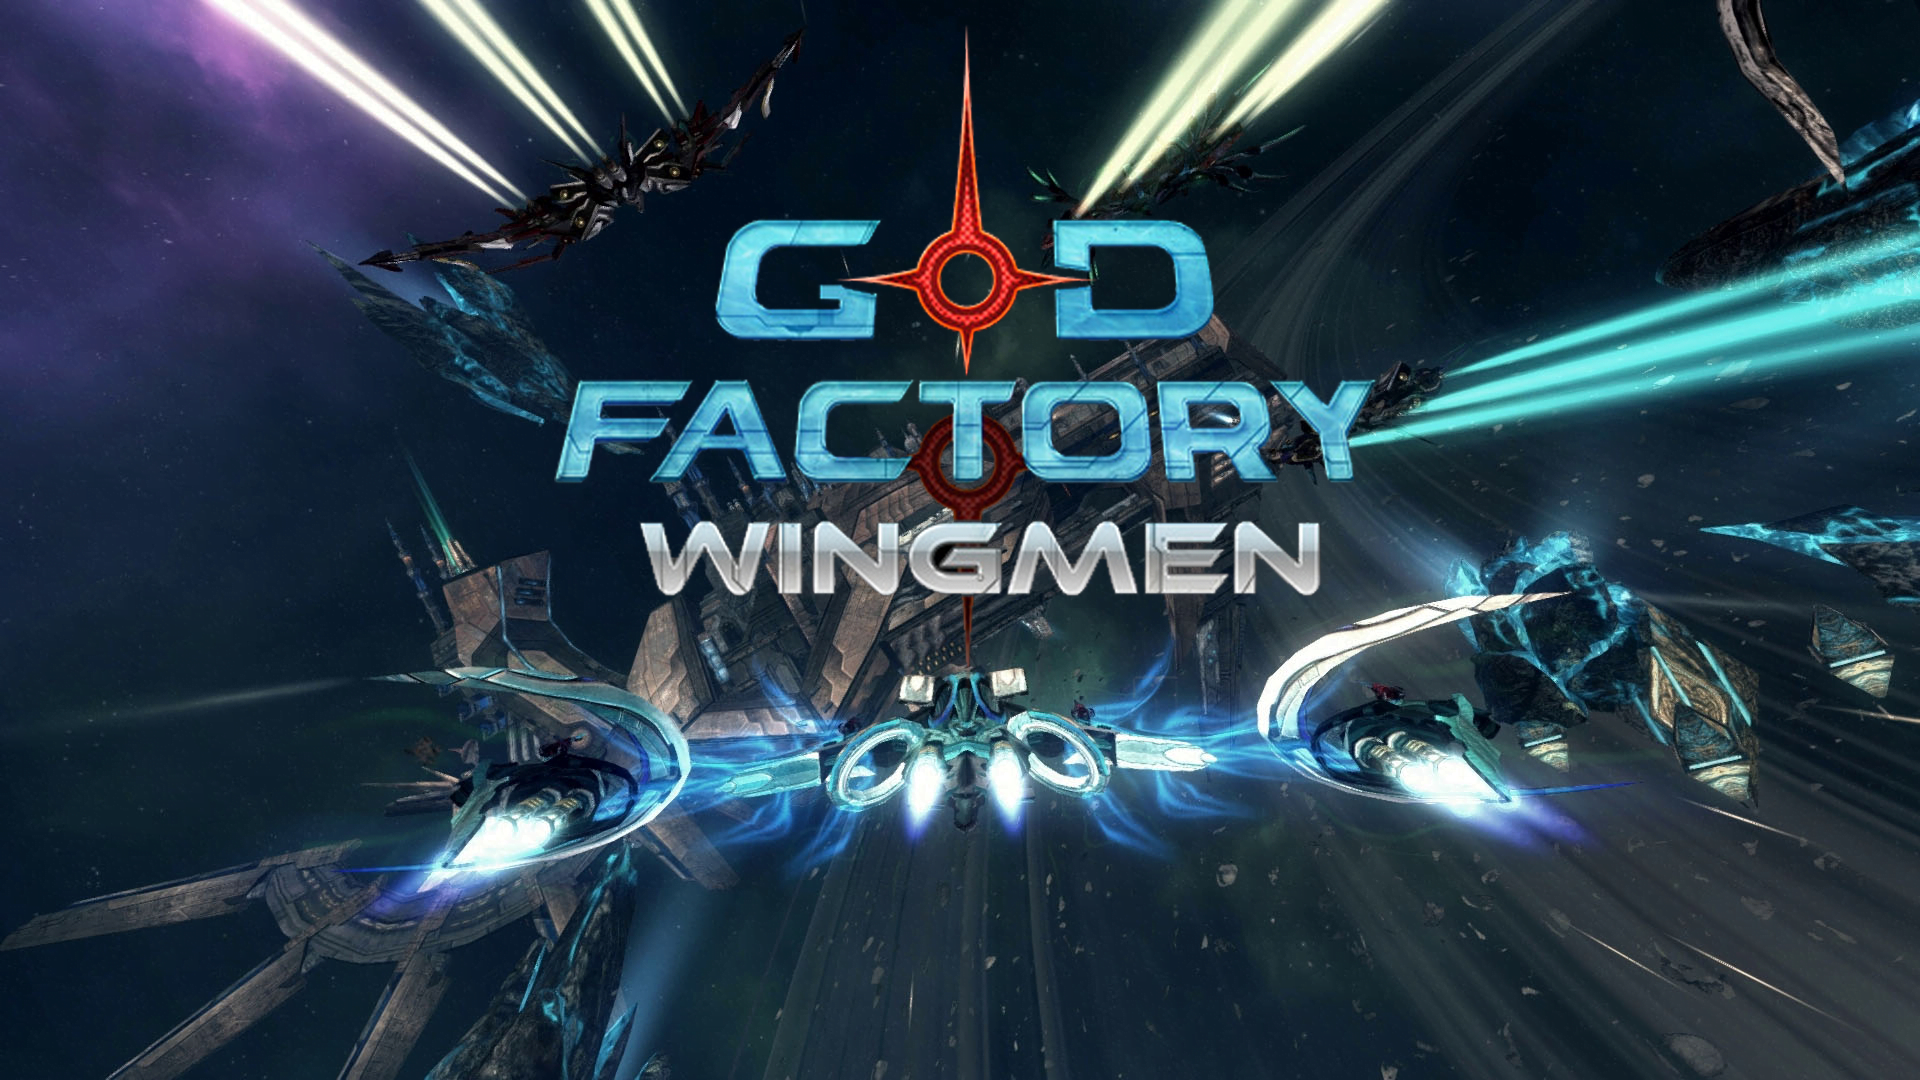 GoD Factory Wingmen Logo